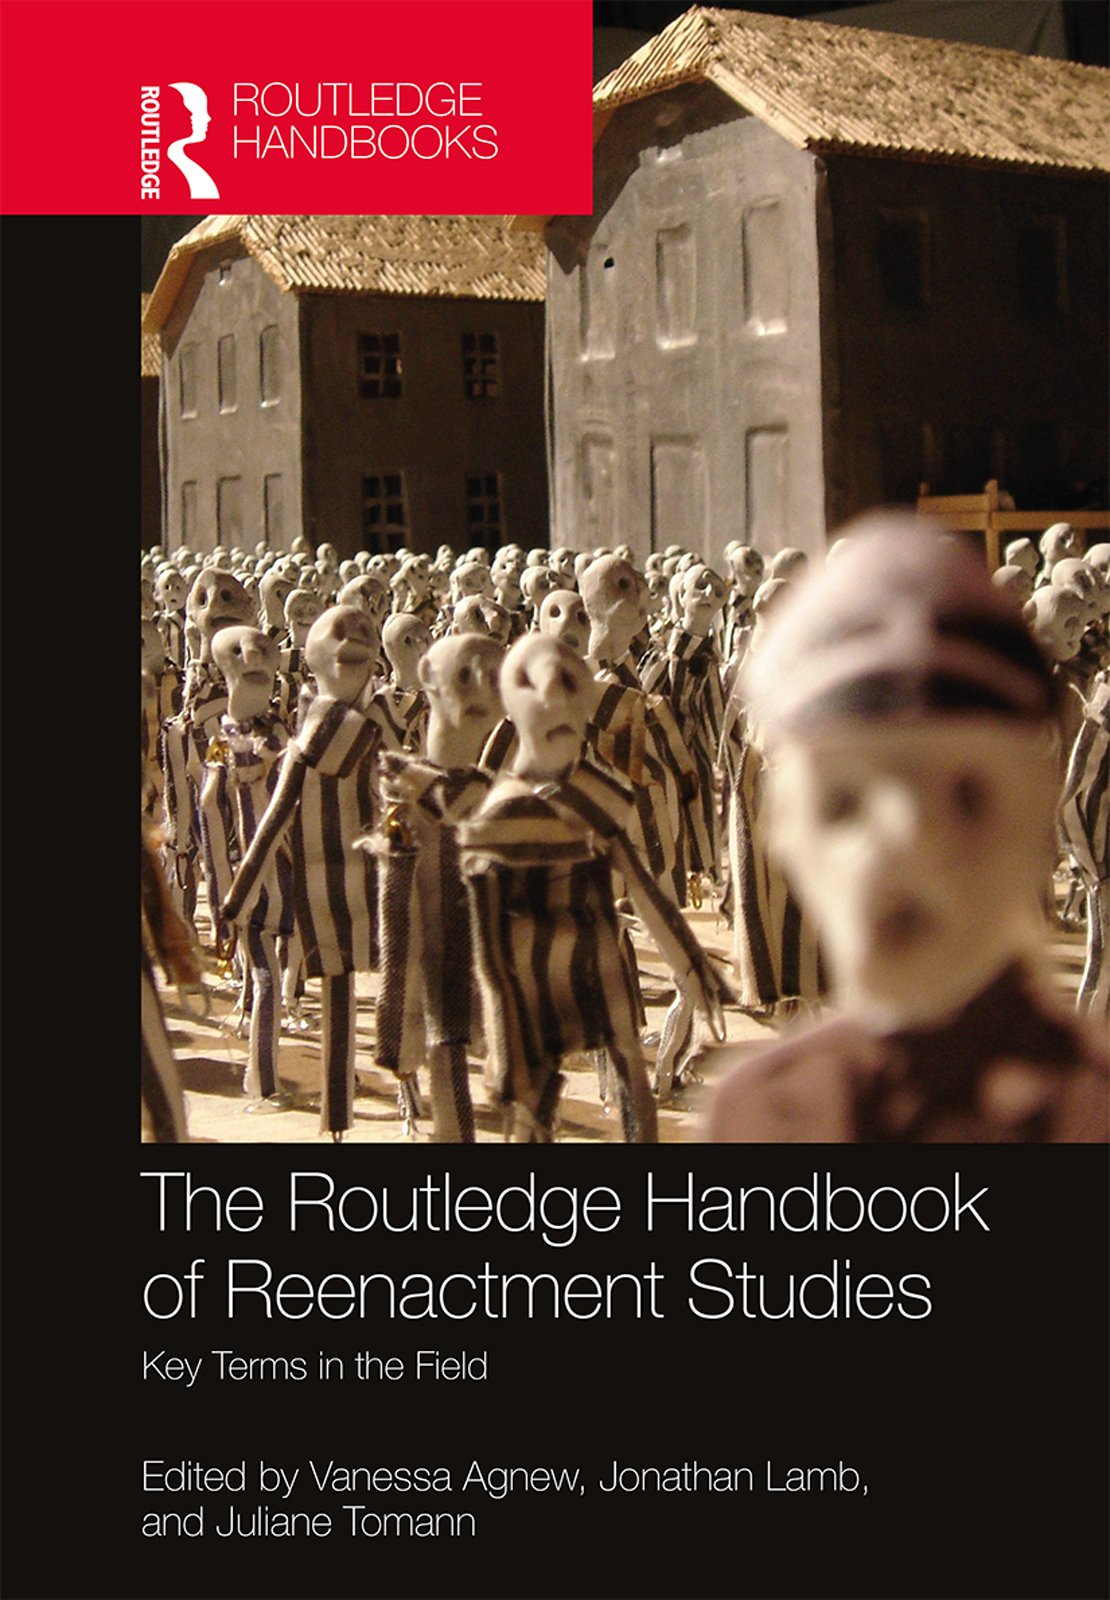 The Routledge Handbook of Reenactment Studies